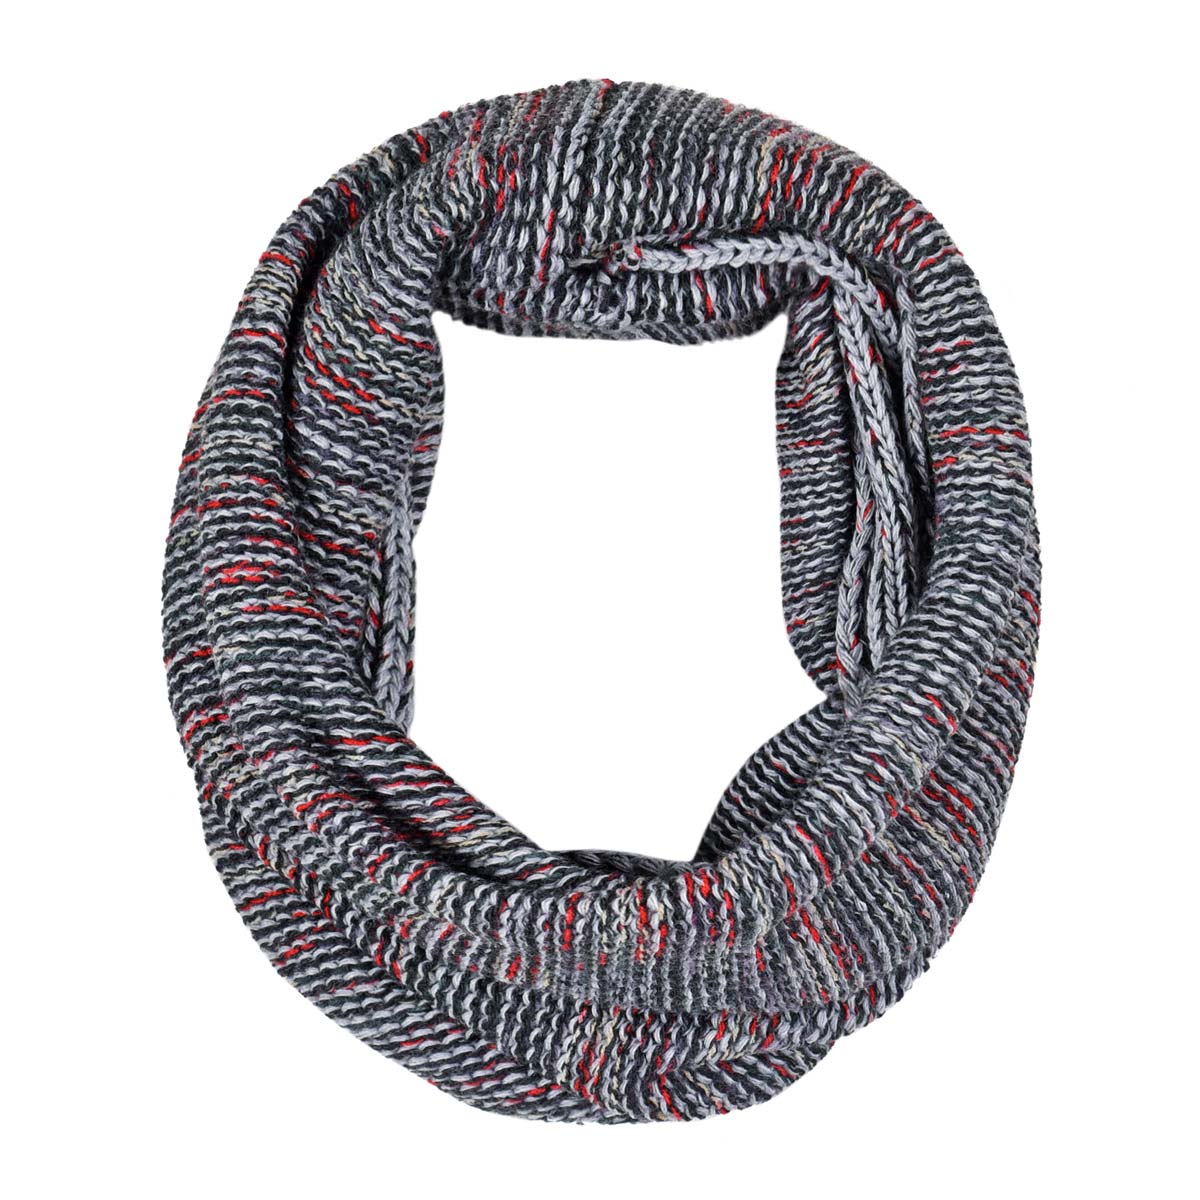 AT-05846_F12-1--_Snood-femme-anthracite